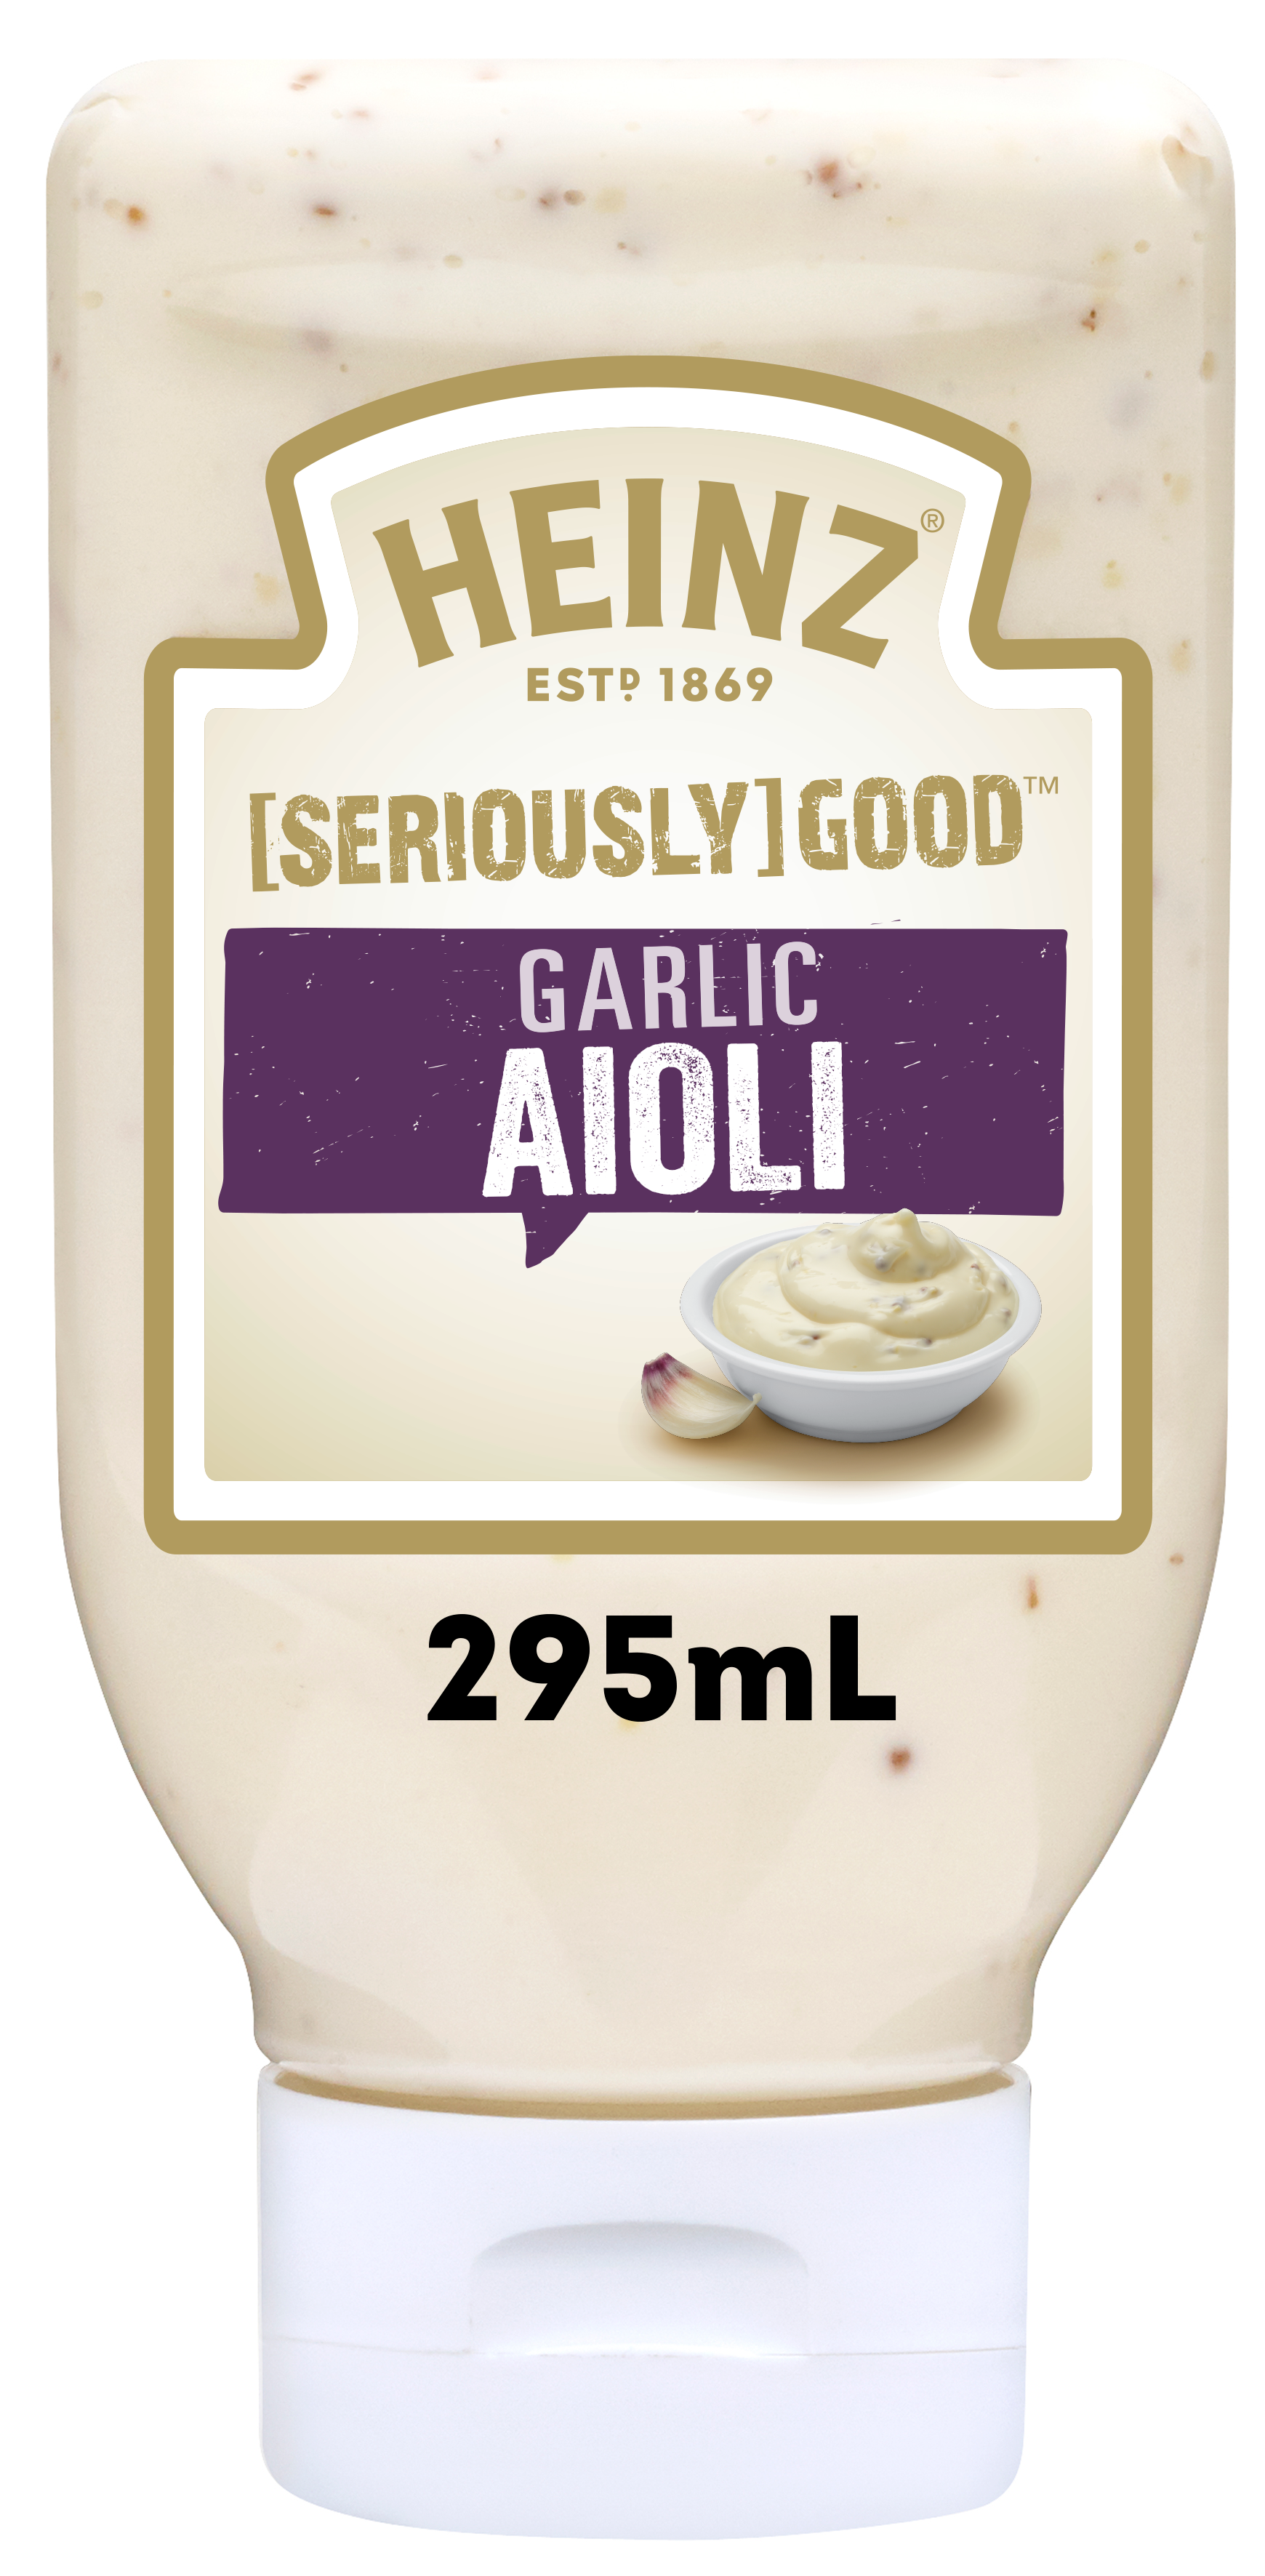 Photograph of Heinz® Seriously Good Garlic Lovers Aioli product